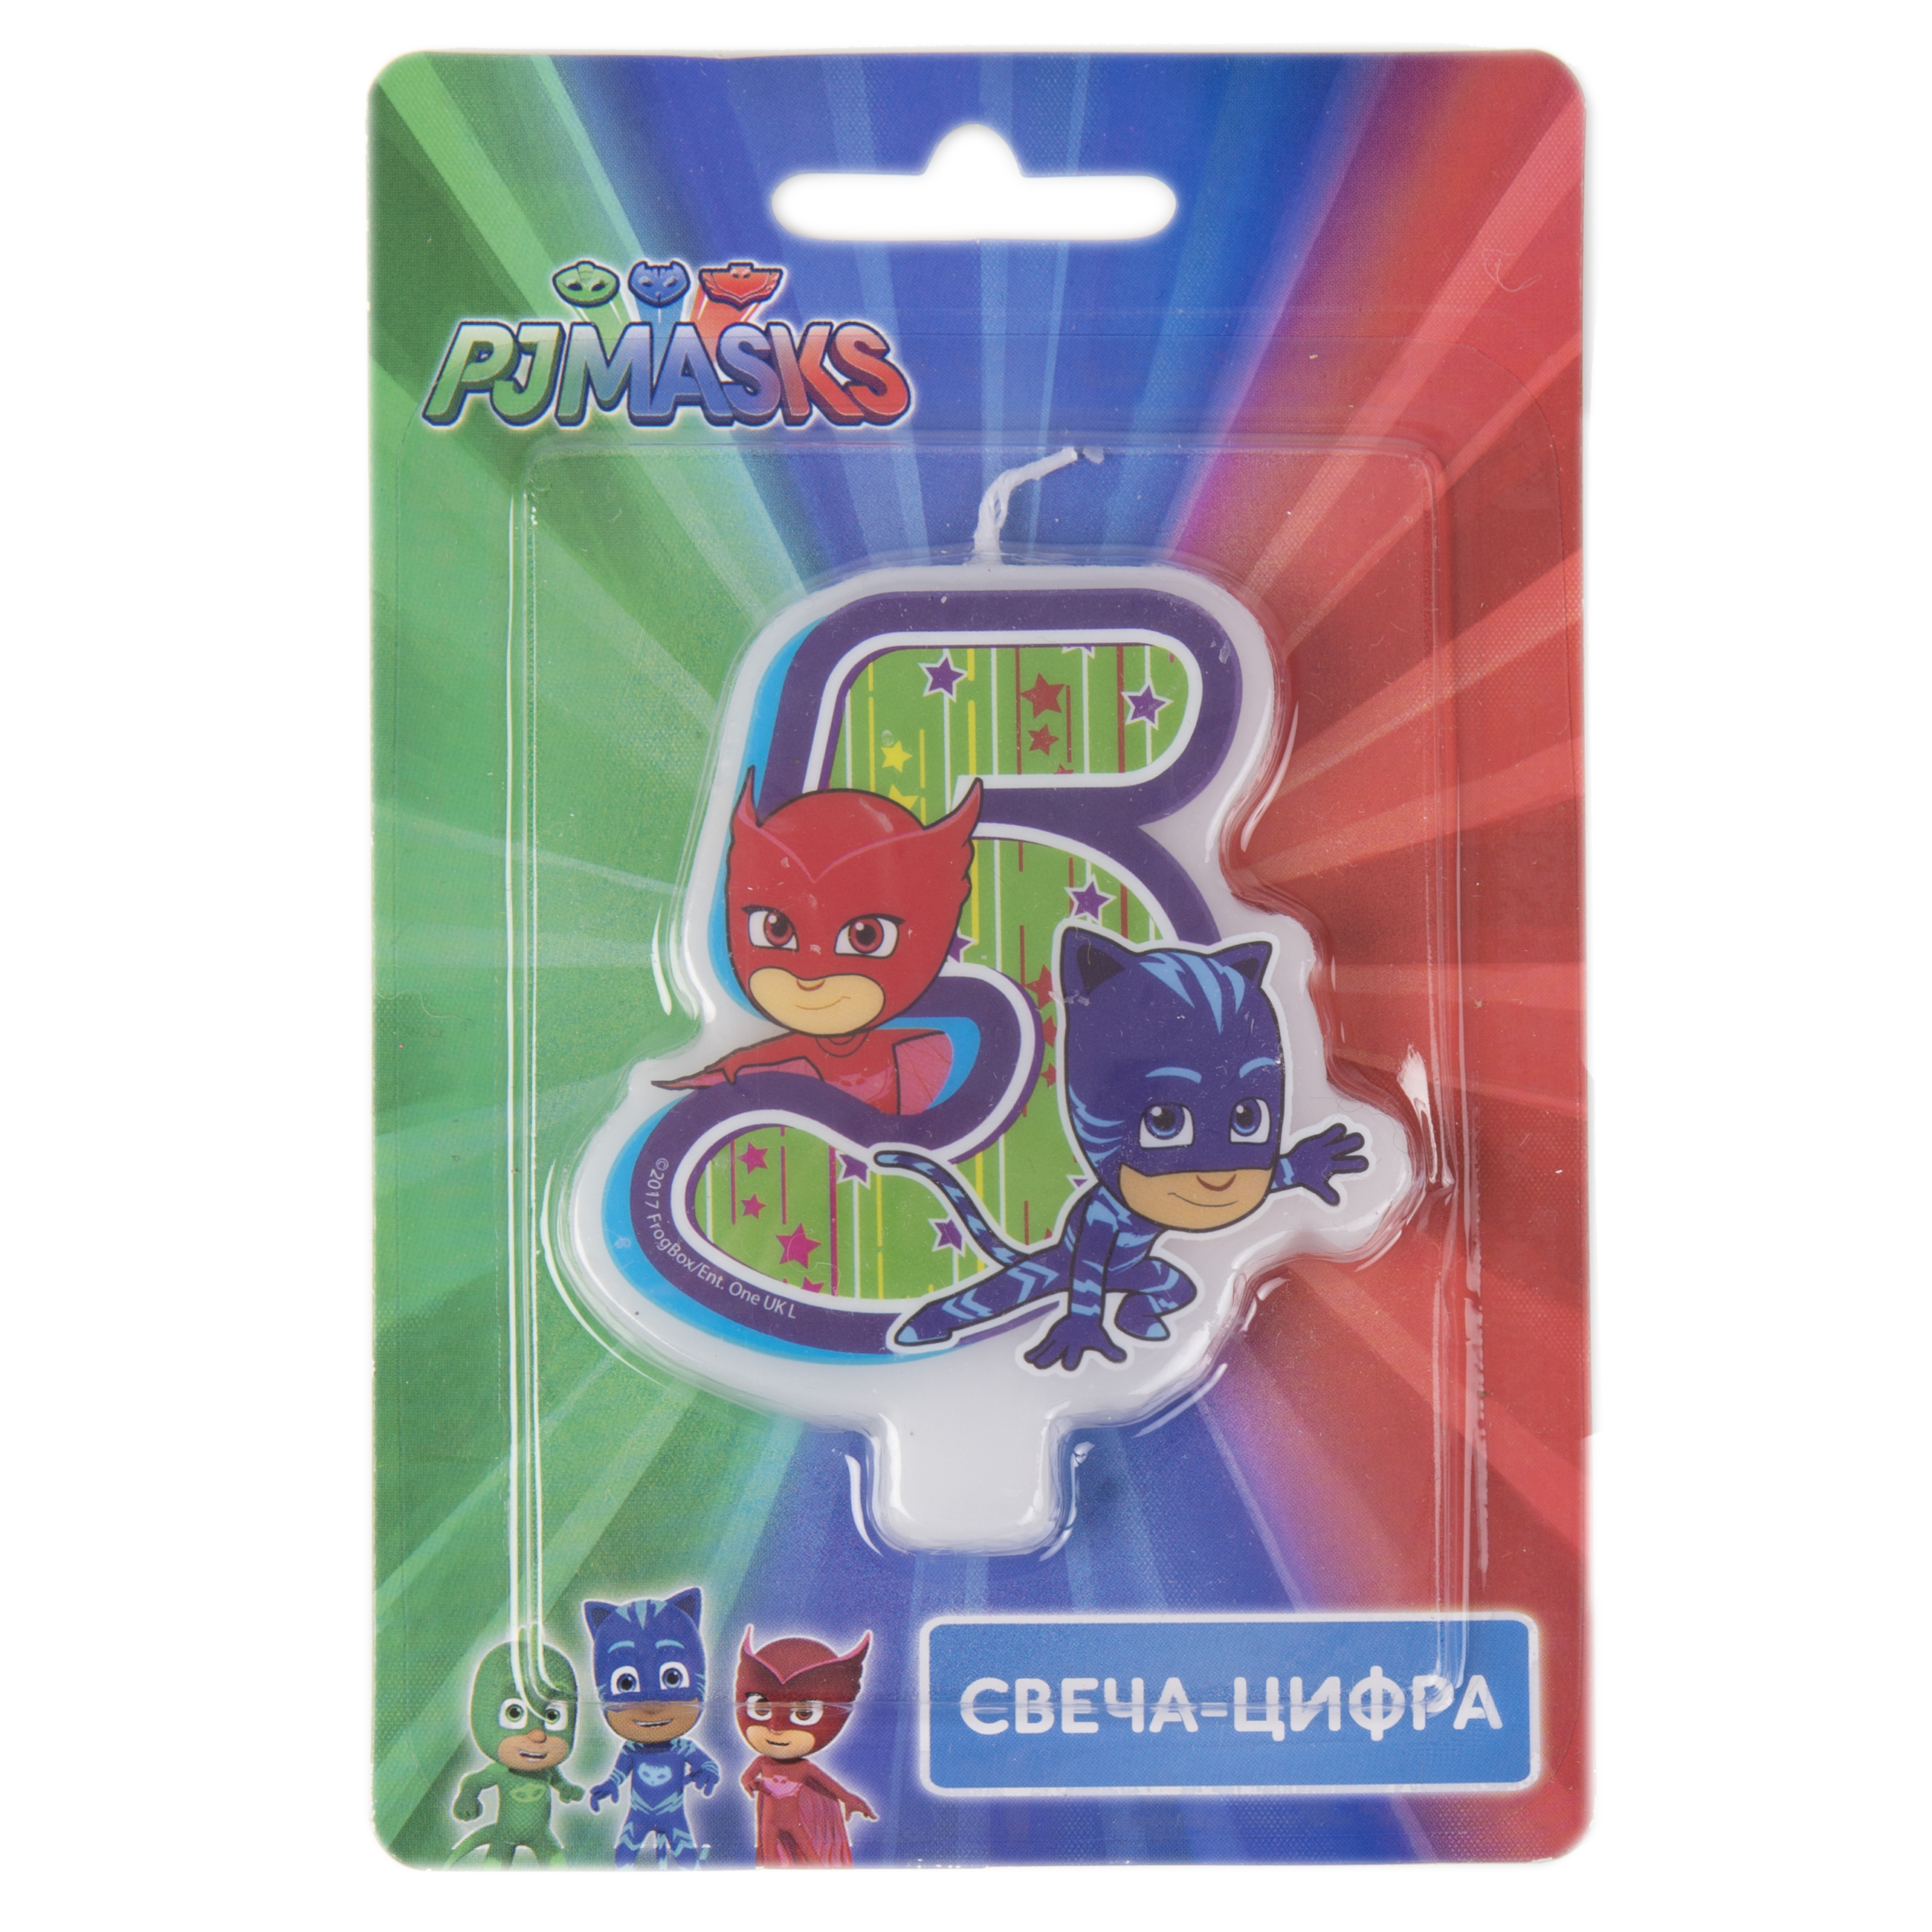 Декор PJ Masks Герои в масках. Цифра 5 3 new designs 7 5 9 5cm pj characters catboy owlette gekko cloak masks action figure toys boy birthday xmas gift plastic dolls